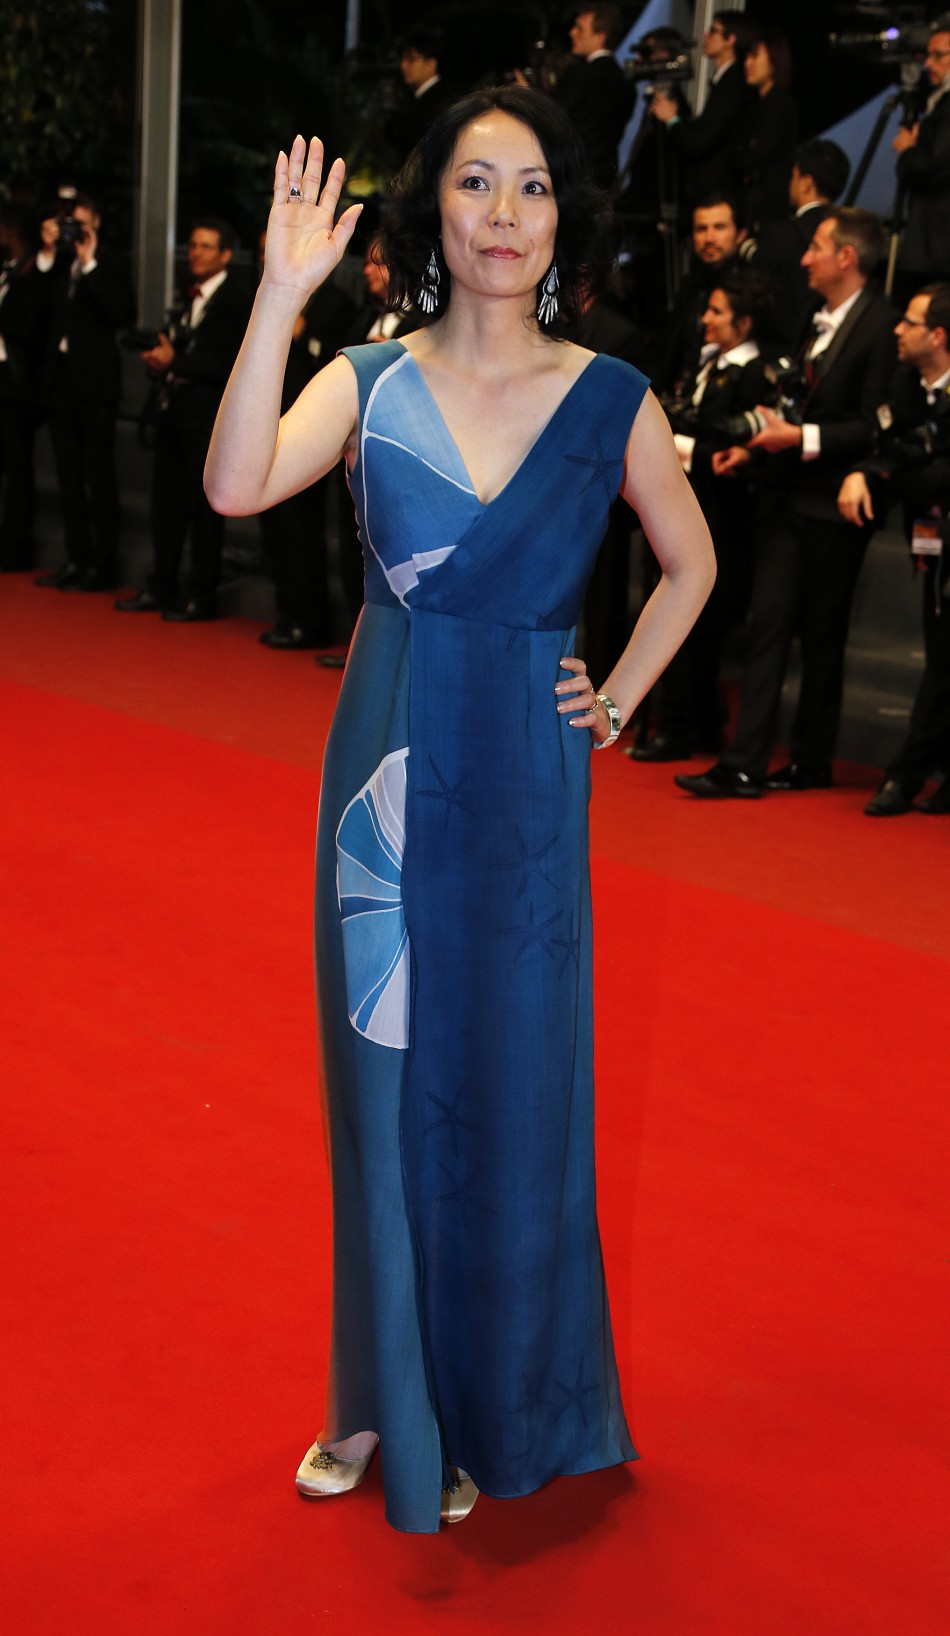 Jury member Naomi Kawase poses on the red carpet as she arrives for the screening of the film Wara No Tate Shield of Straw in competition during the 66th Cannes Film Festival in Cannes May 20, 2013.